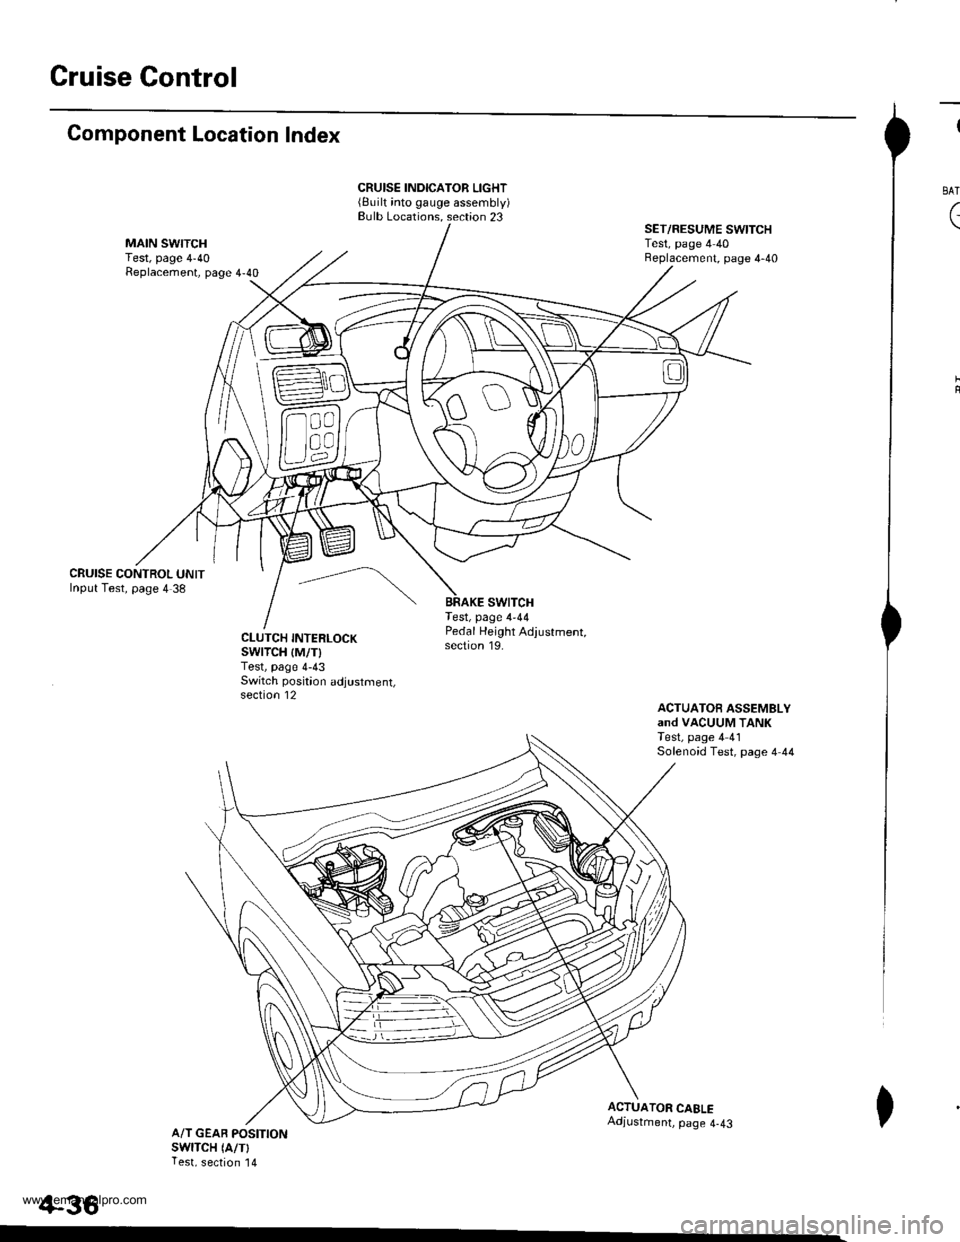 HONDA CR-V 1998 RD1-RD3 / 1.G Workshop Manual  Gruise Control Component Location Index CRUISE CONTROL UNITInput Test, page 4 38 CRUISE INDICATOR LIGHT(Built into gauge assembly)Bulb Locations. section 23 swtTcHTest, page 4-44 SET/RESUME SWITCHTes